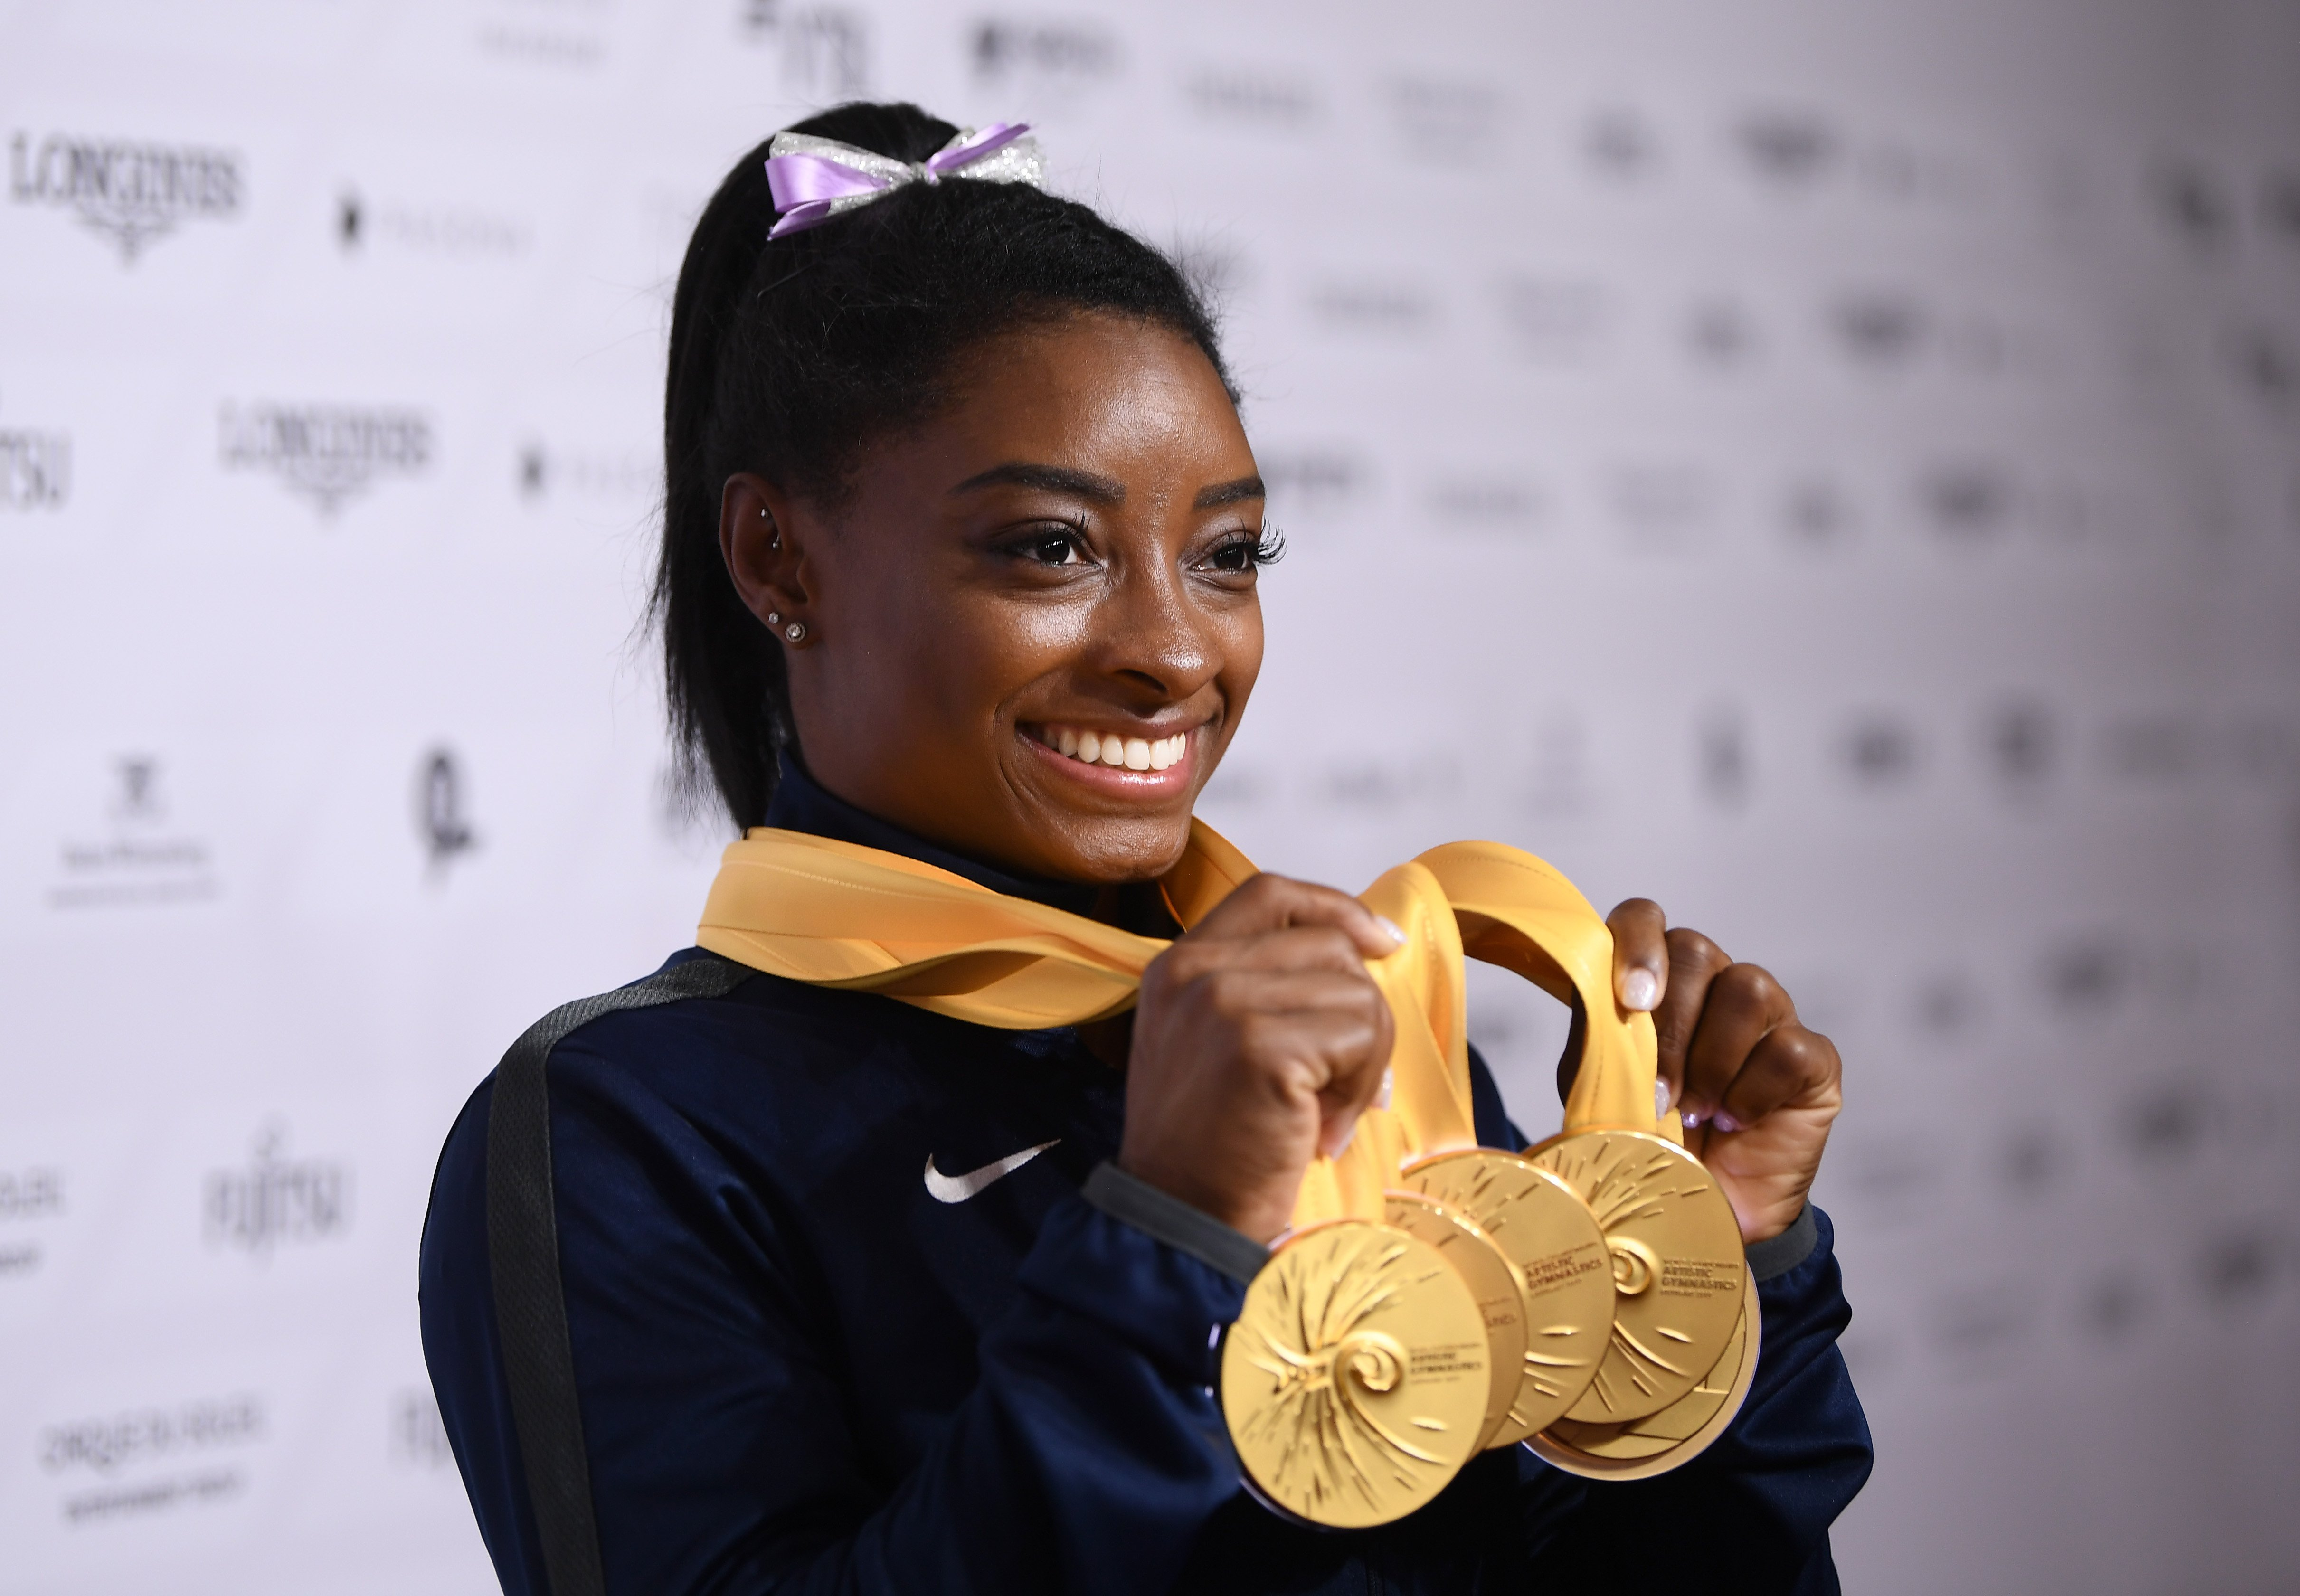 Simone Biles poses at the FIG Artistic Gymnastics World Championships on October 13, 2019 in Stuttgart, Germany | Source: Getty Images